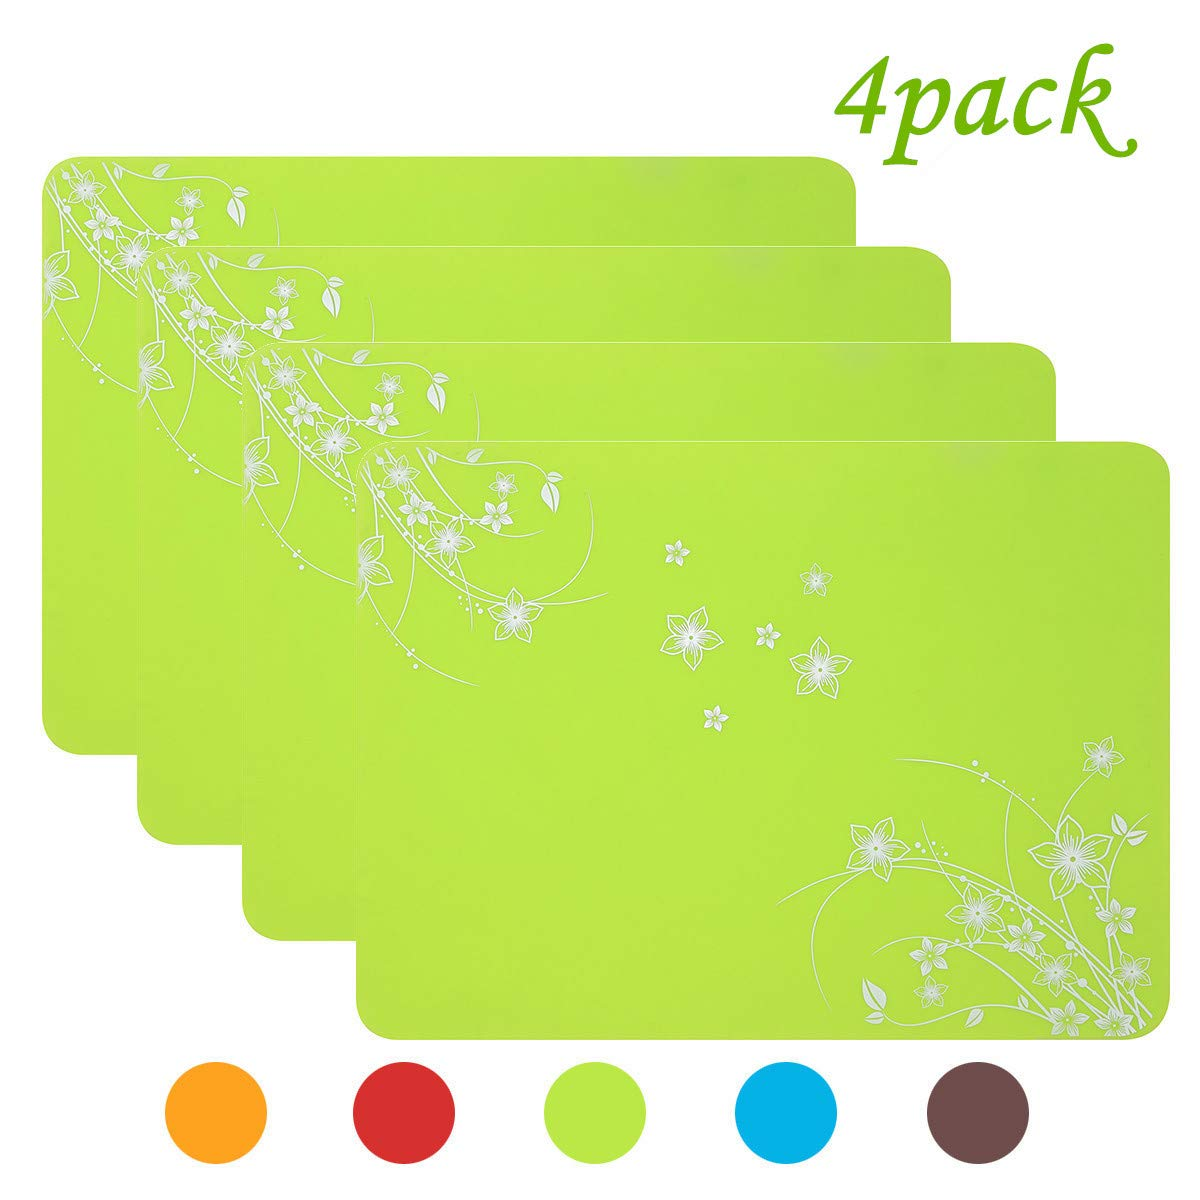 RIYUEMING Silicone Placemat,Waterproof Placematsfor Home, Kitchen and Outdoor, Heat Resistance and Water Proof, Non Slippery, Set of 4 (Green )